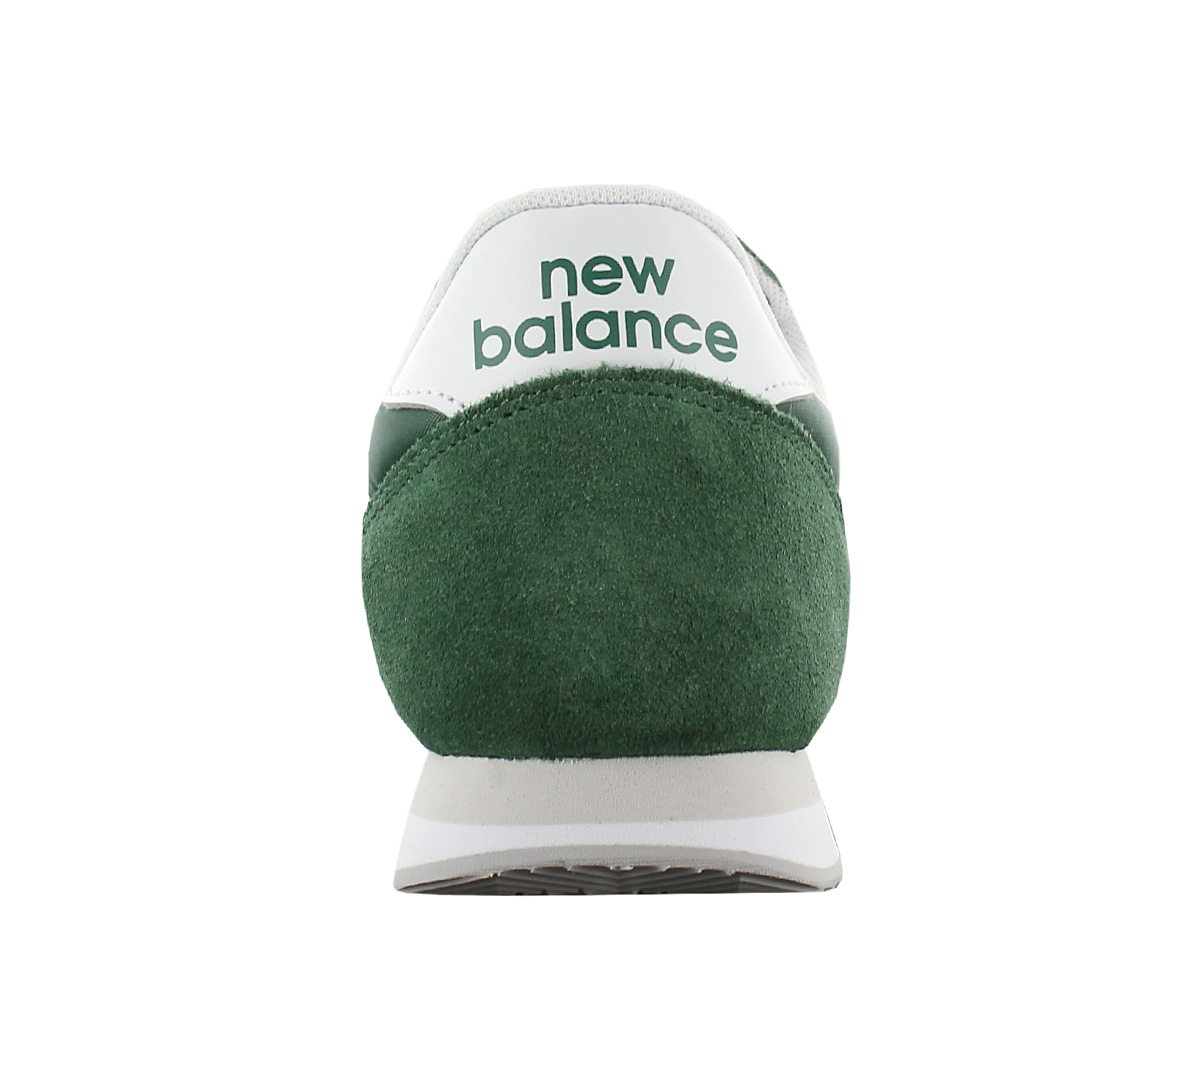 Details about NEW Balance 220 Mens Trainers Shoes Sports Shoes Trainers u220 420 u220cg NEW show original title